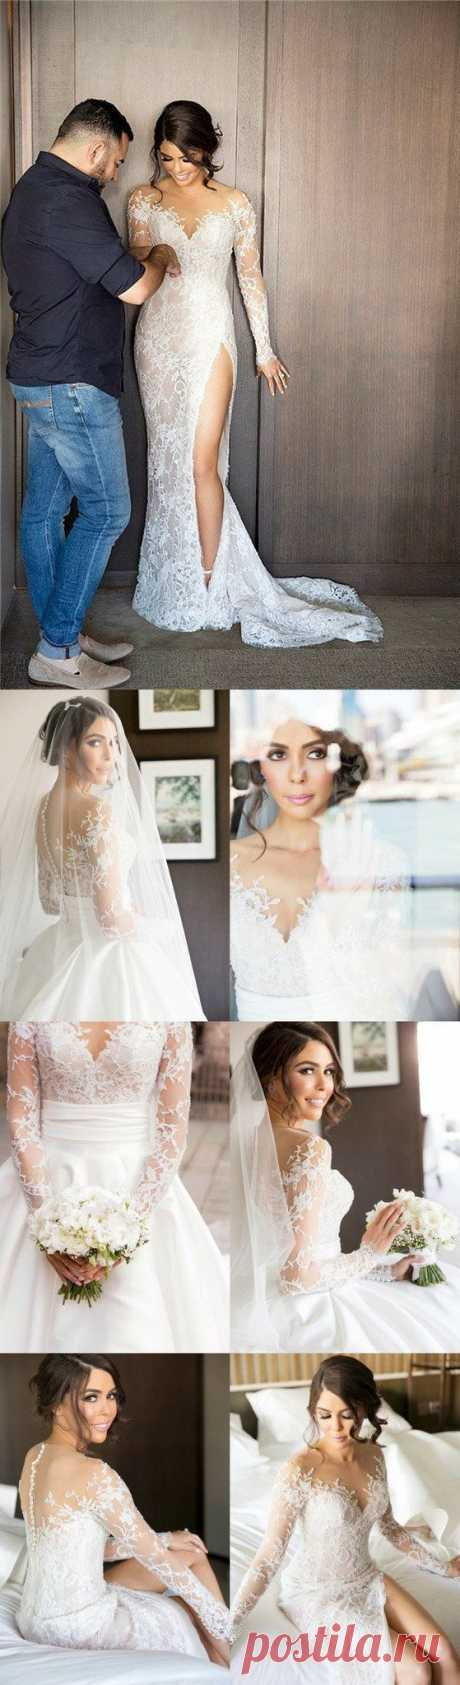 Prom Dresses Beautiful, 2019 New Full Lace Split Wedding Dresses with Detachable Satin Skirt Prom Formal EFuXuan Prom Dresses Beautiful, 2019 New Full Lace Split Wedding Dresses with Detachable Satin Skirt, Looking for the perfect prom dress to shine on your big night? Prom Dresses 2020 collection offers a variety of stunning, stylish ball.